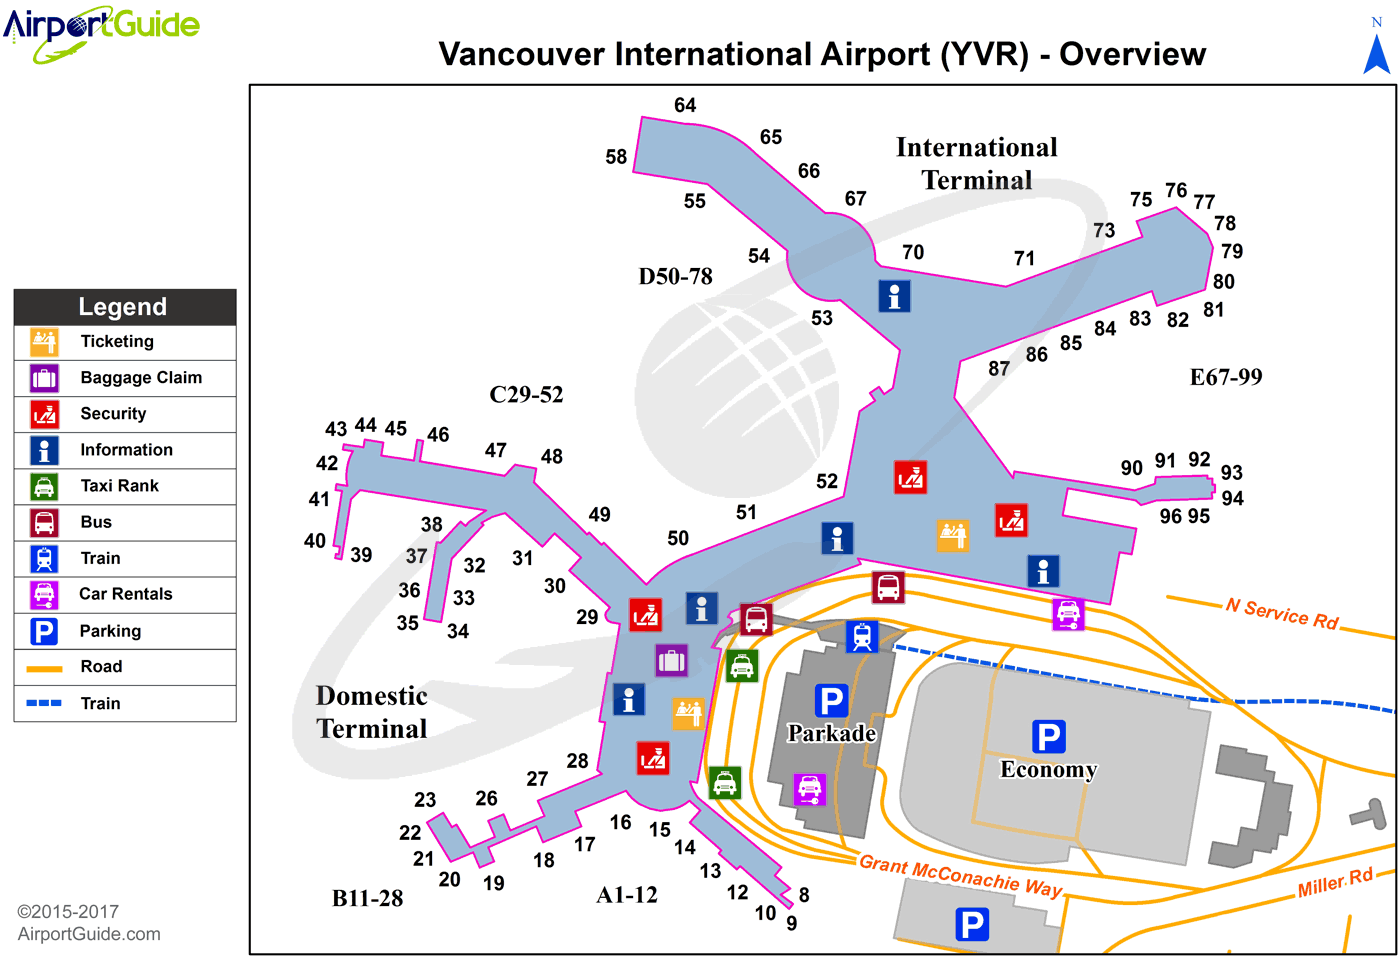 Vancouver - Vancouver International (YVR) Airport Terminal Map - Overview